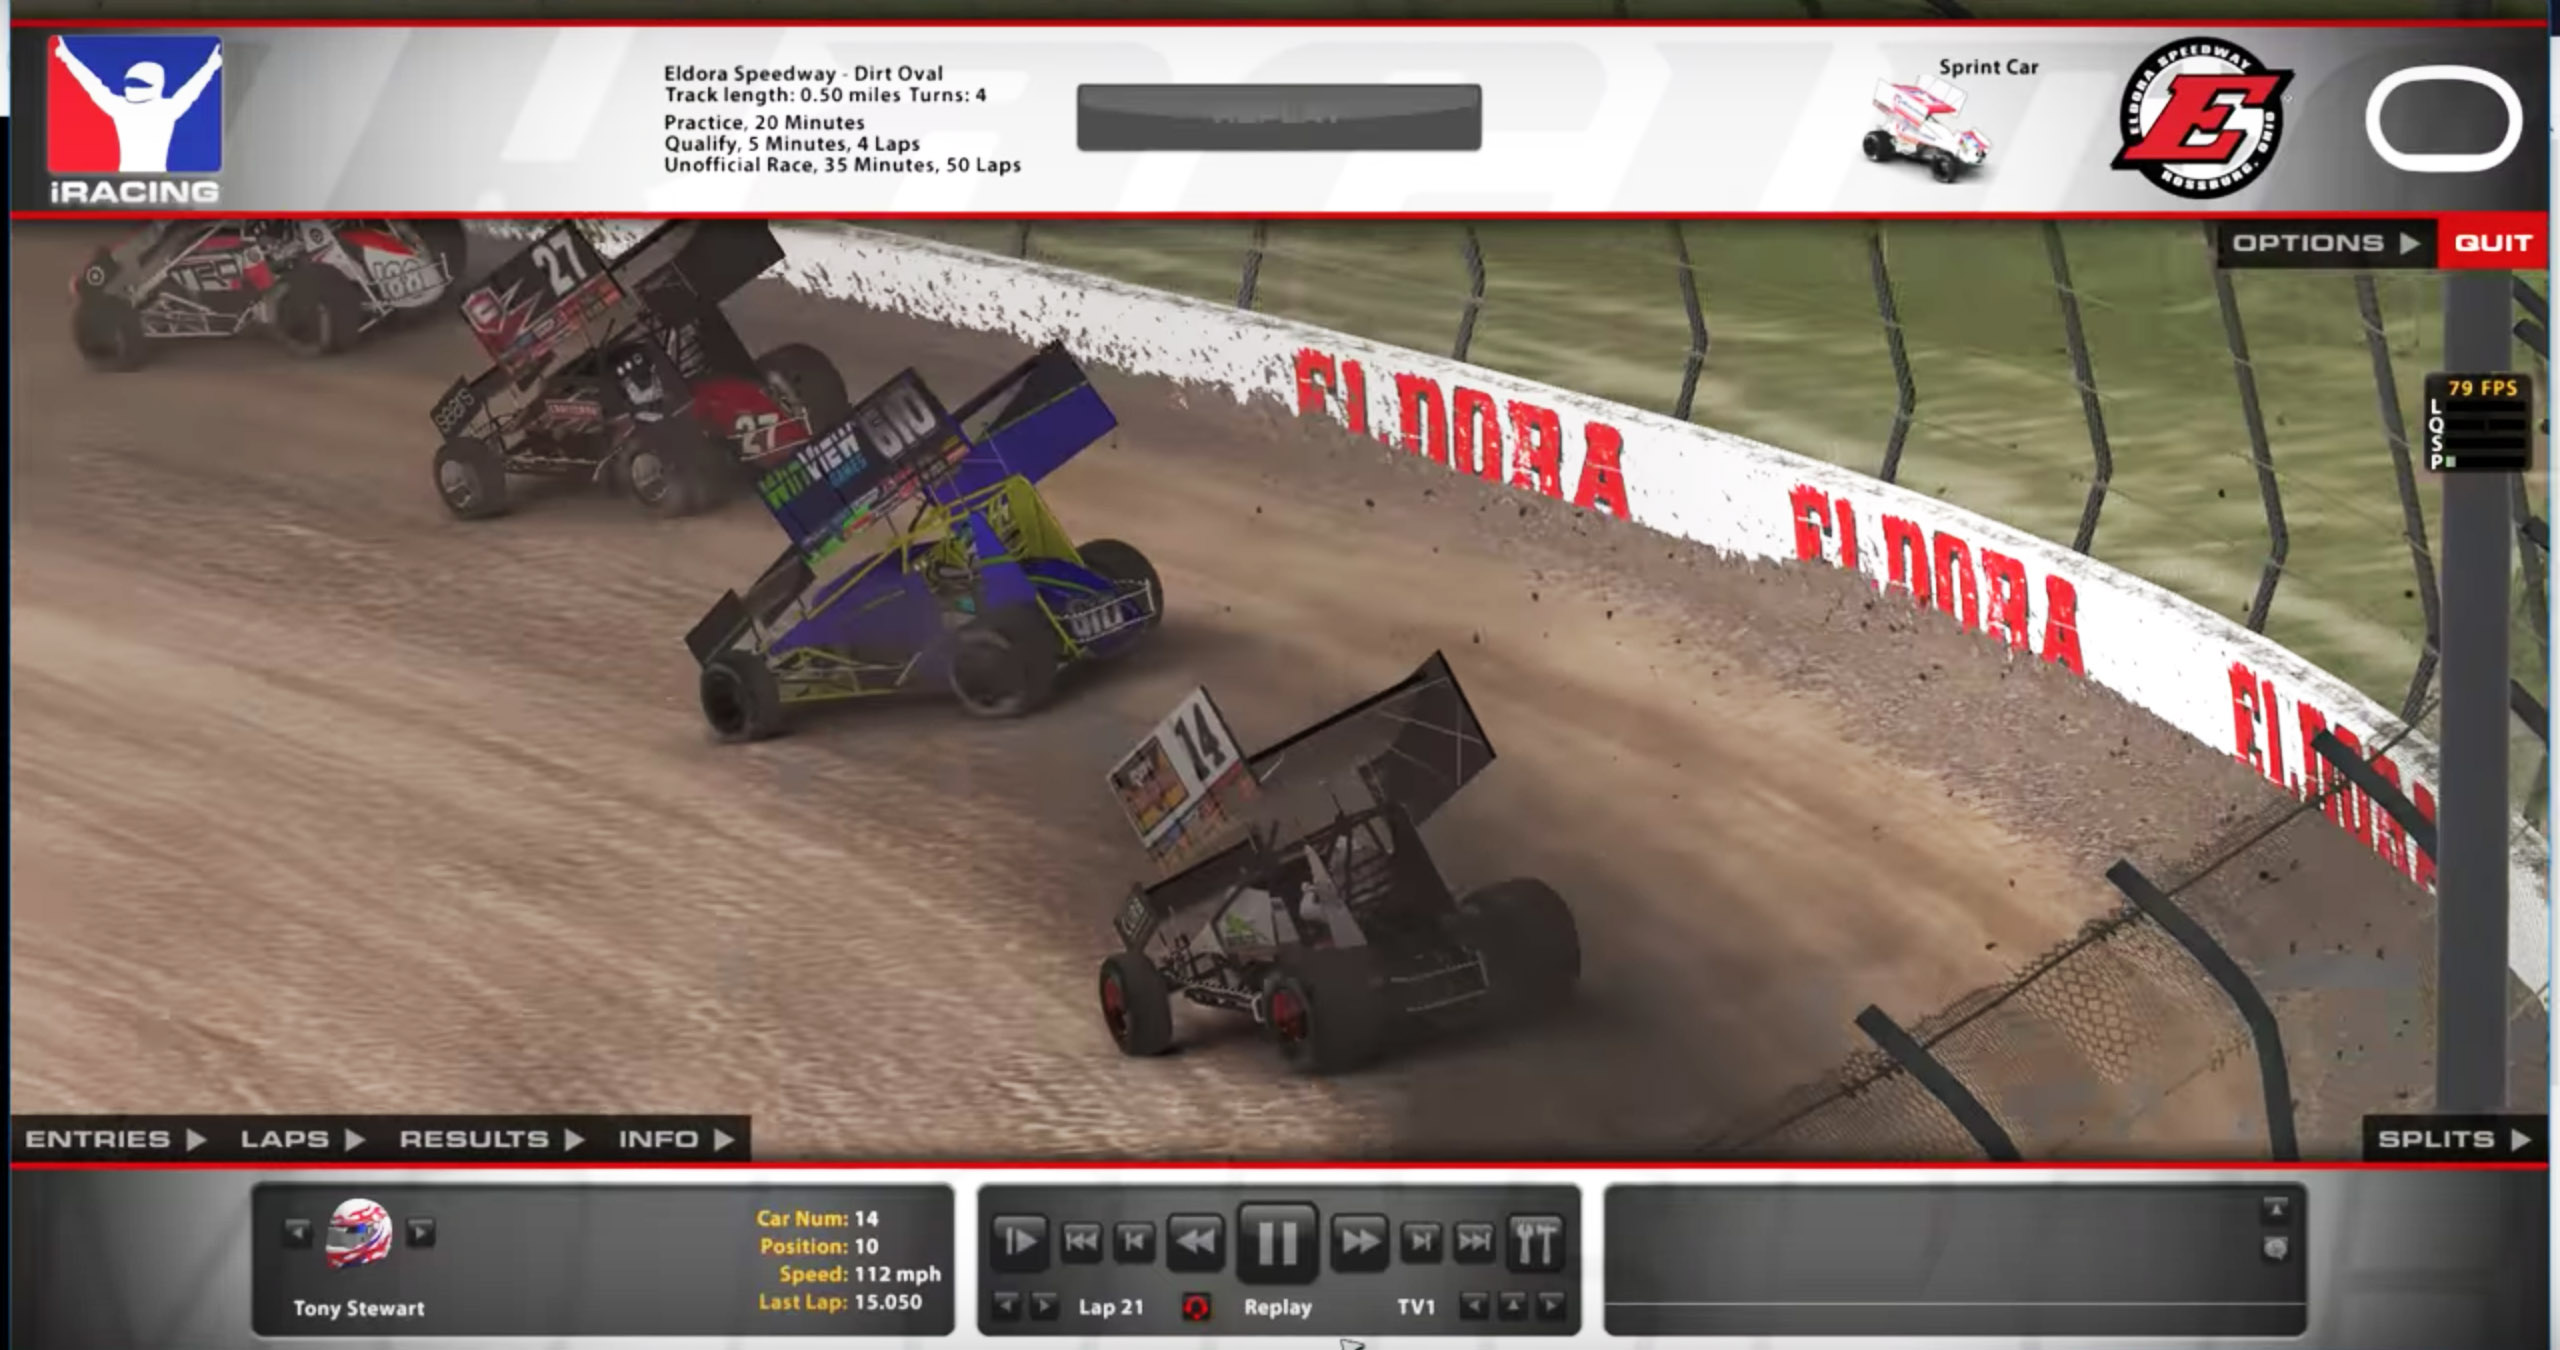 Tony Stewart Sprint Car - iRacing